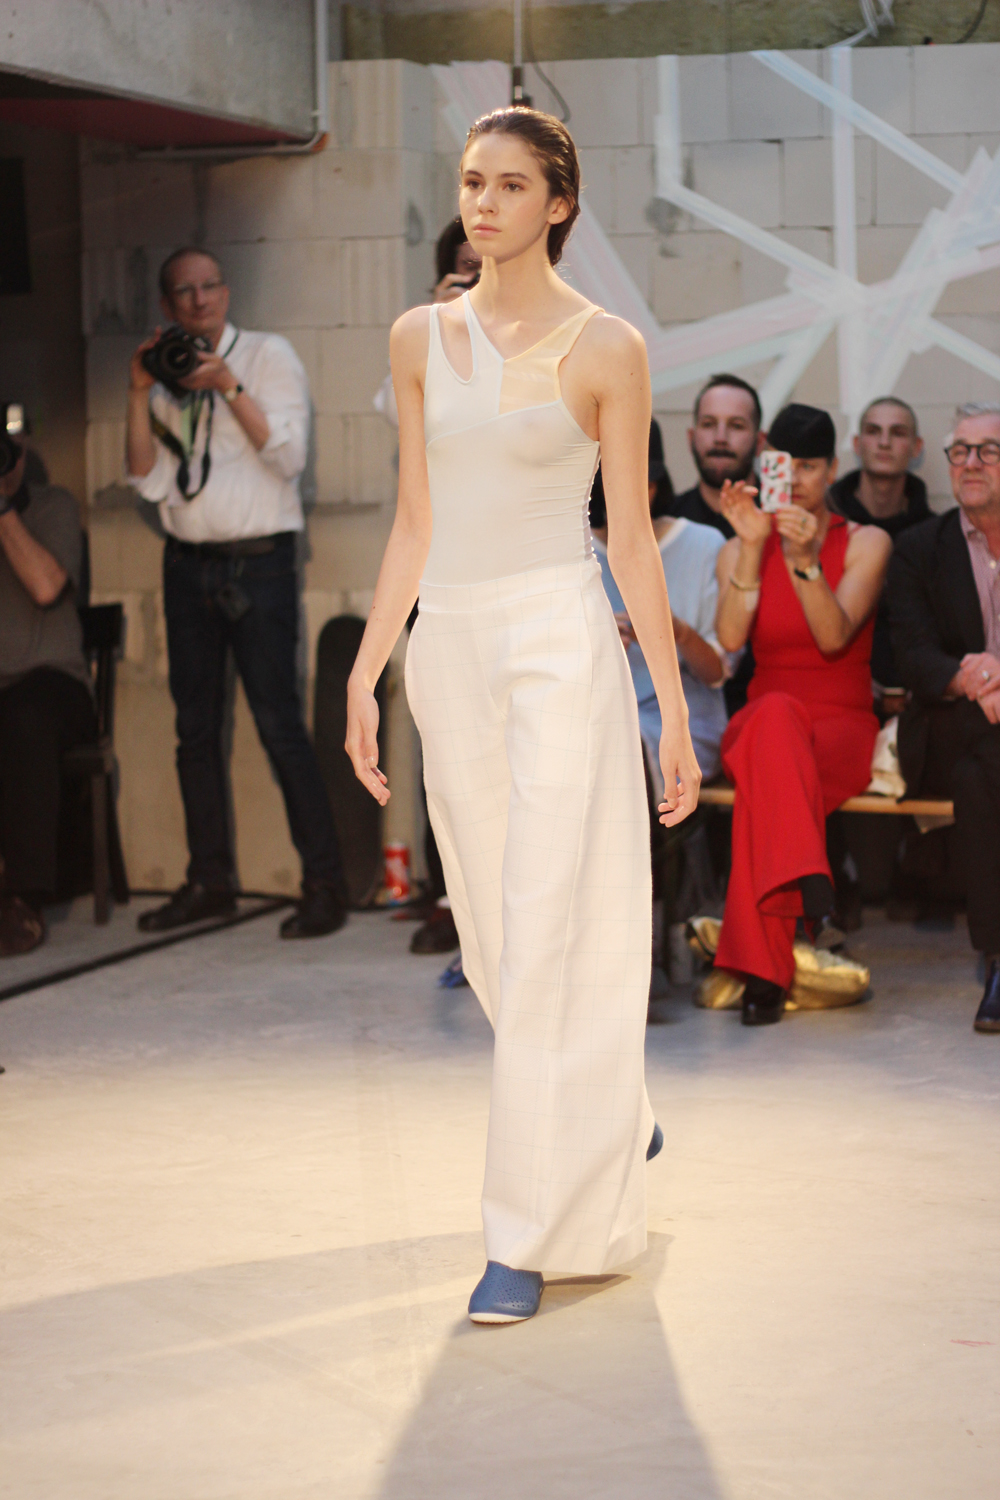 fatimayarie-berlinfashionweek-samplecm-runway-white-marlenepants-img_4041